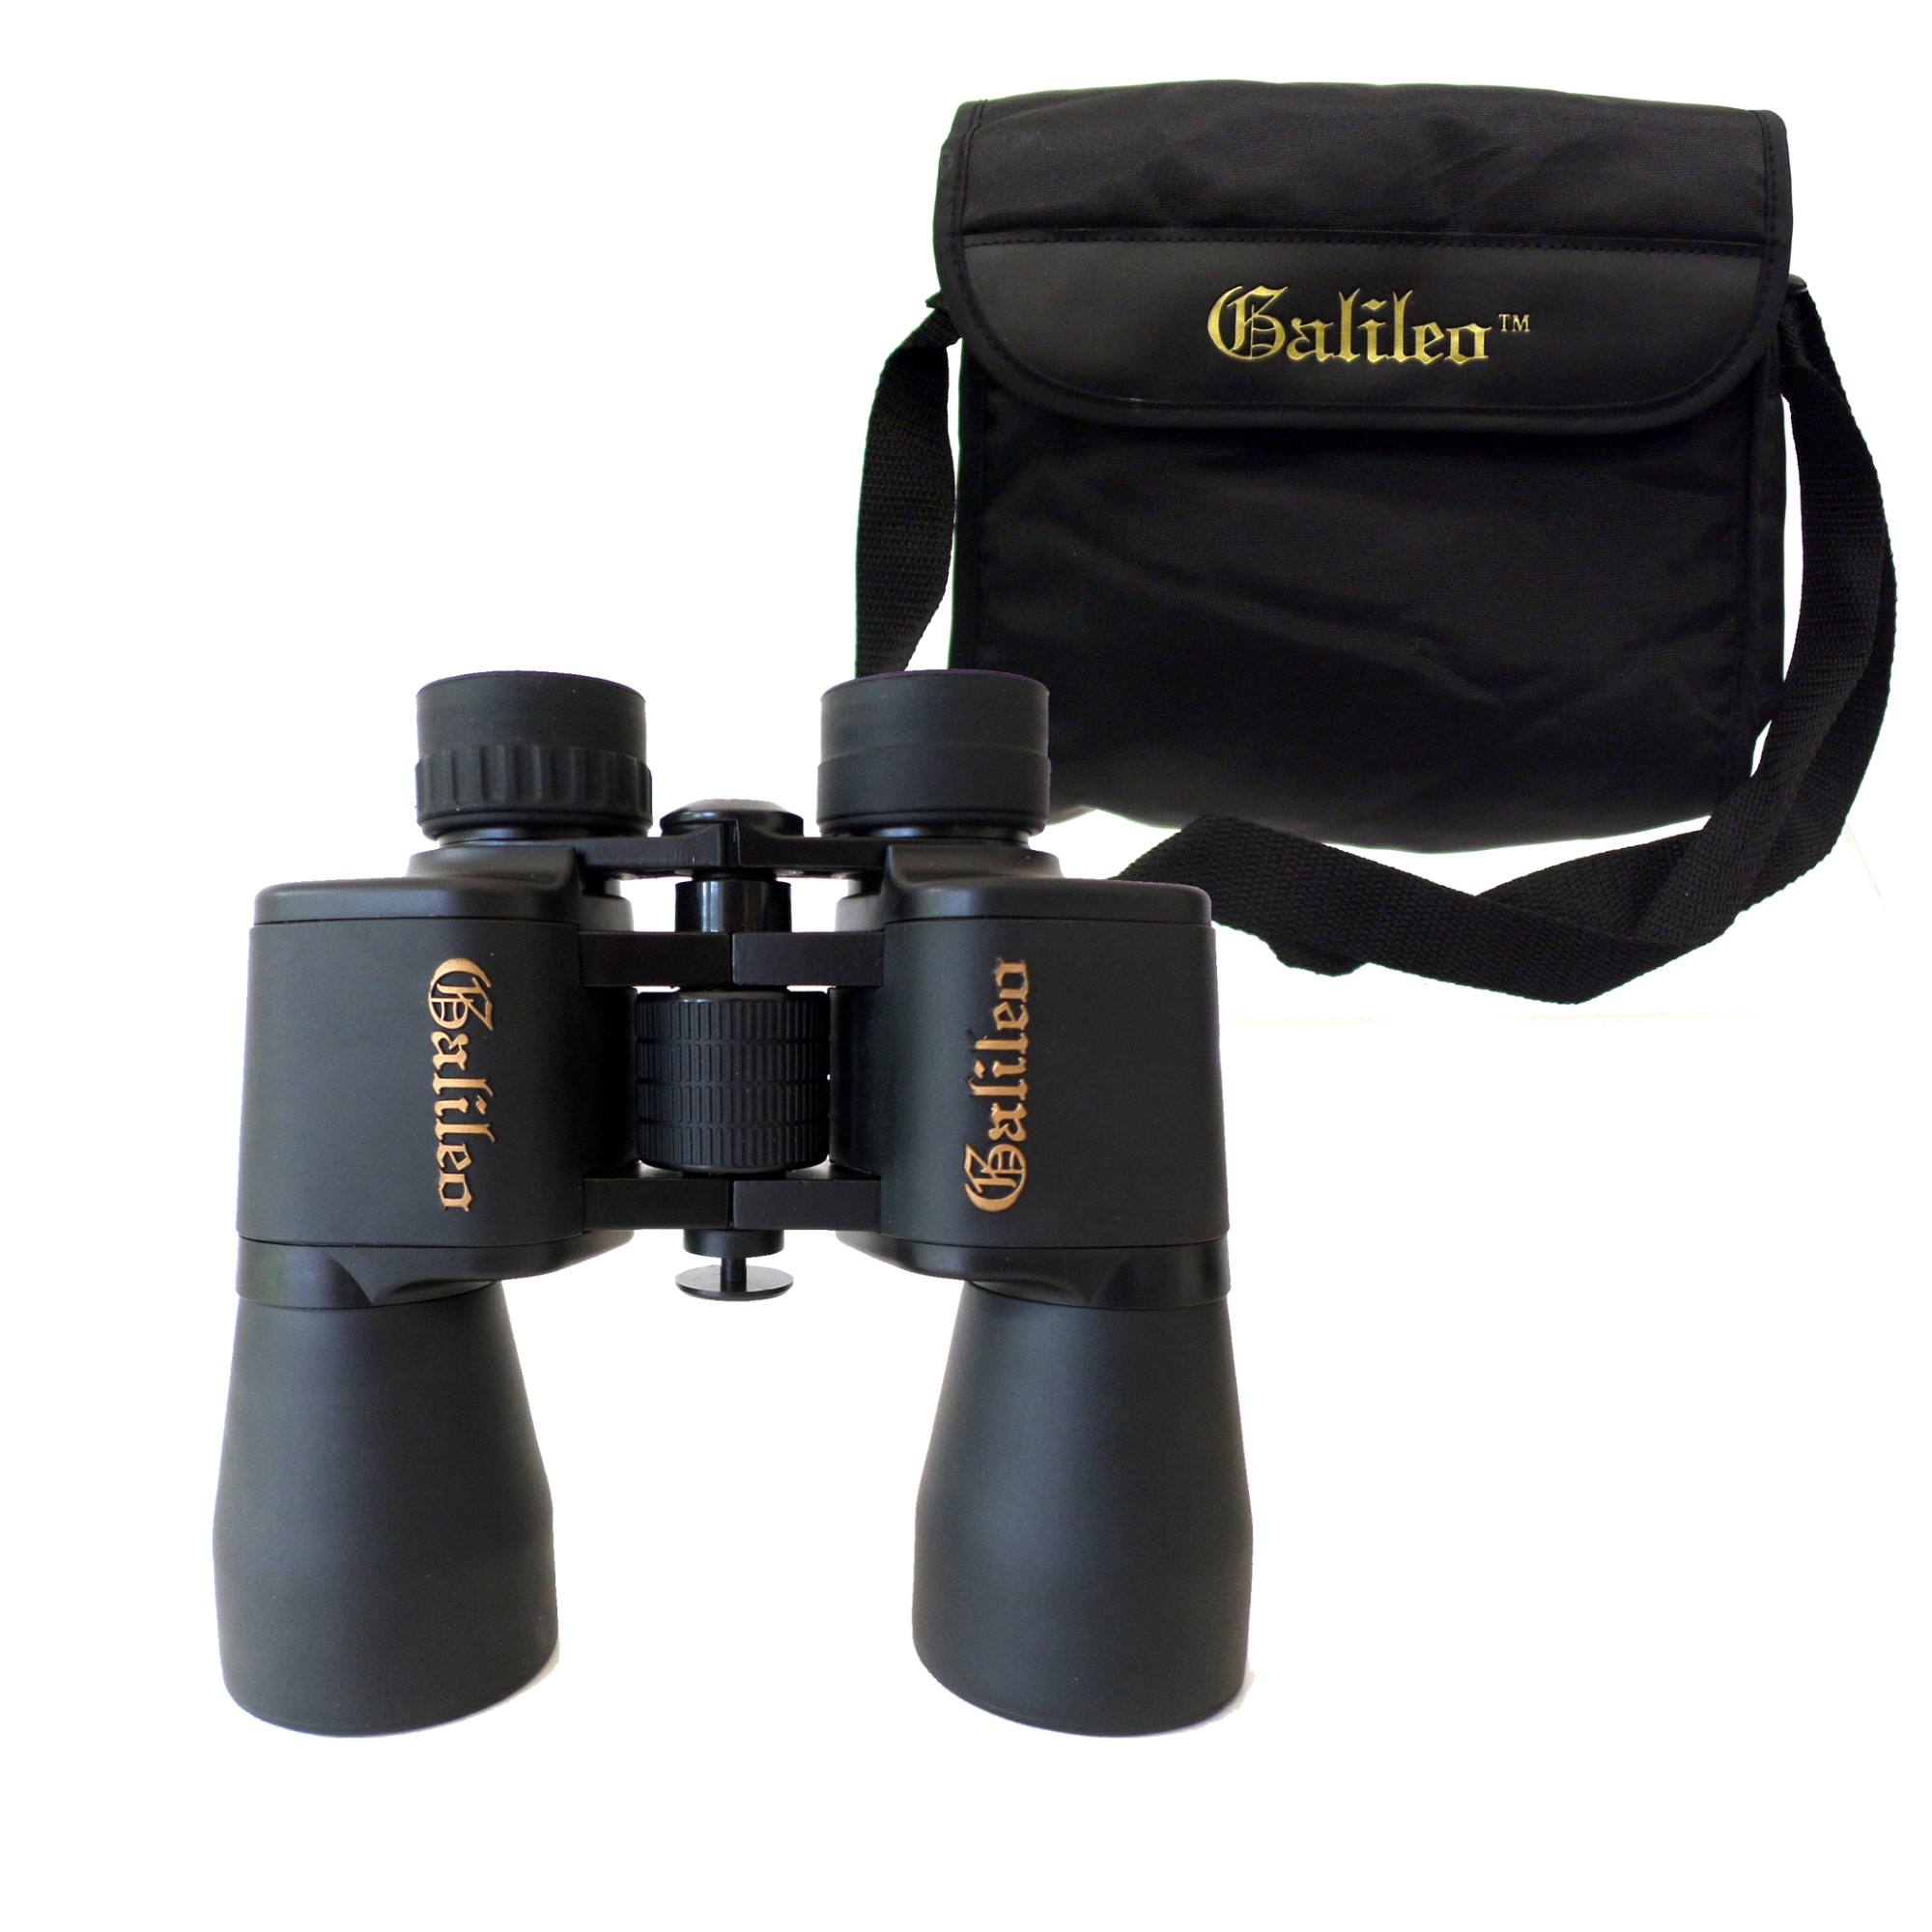 Galileo 8 Power Birding Binocular with 40mm lenses for wide field of view. Embossed logo, Rubber armoring, Tripod port and Shoulder Case.